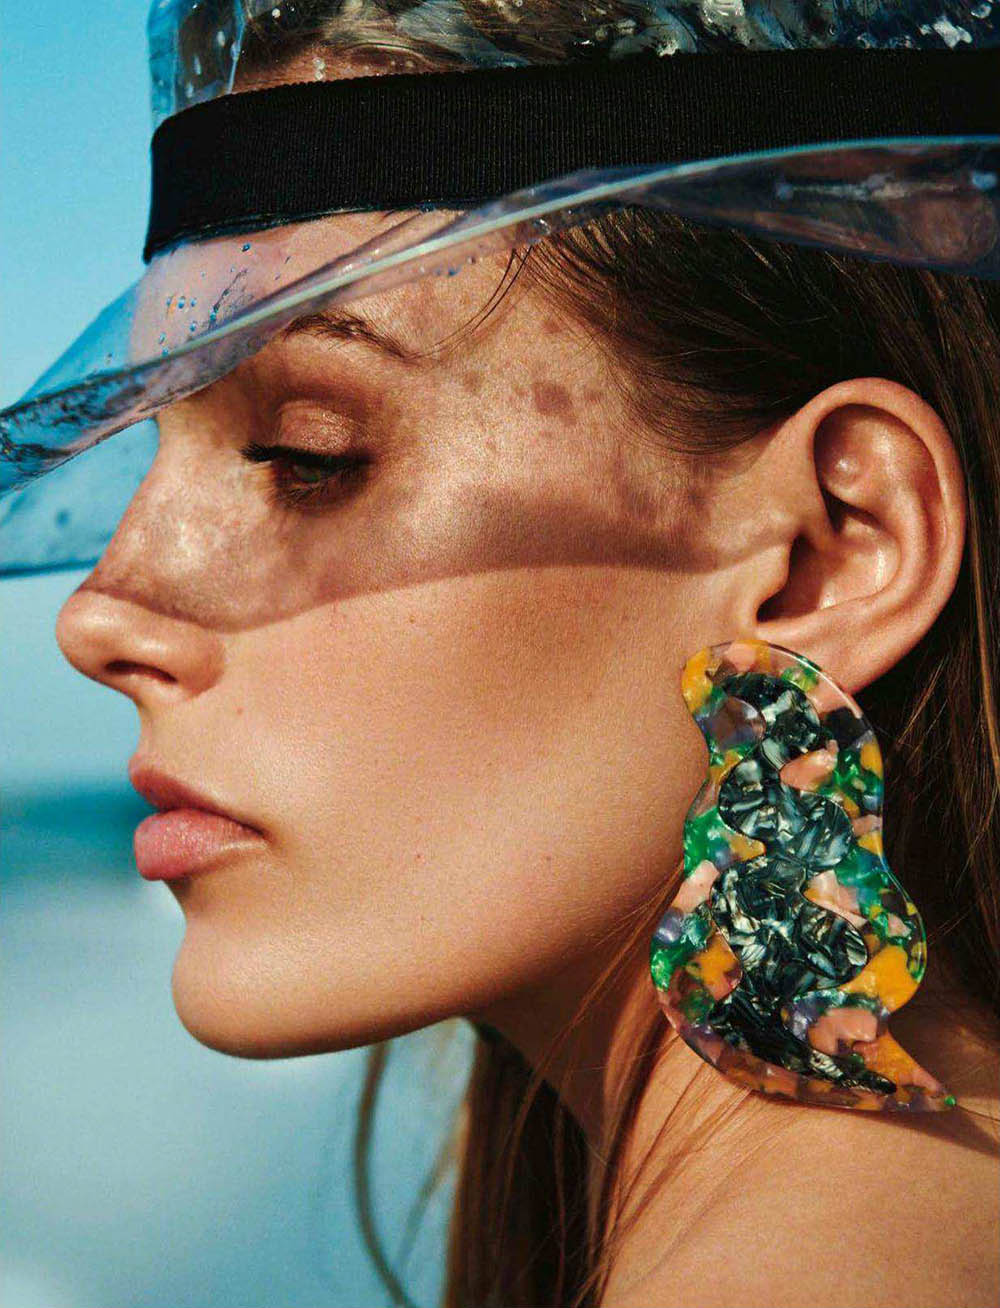 Madison Headrick by Bjorn Iooss for Vogue Spain June 2018